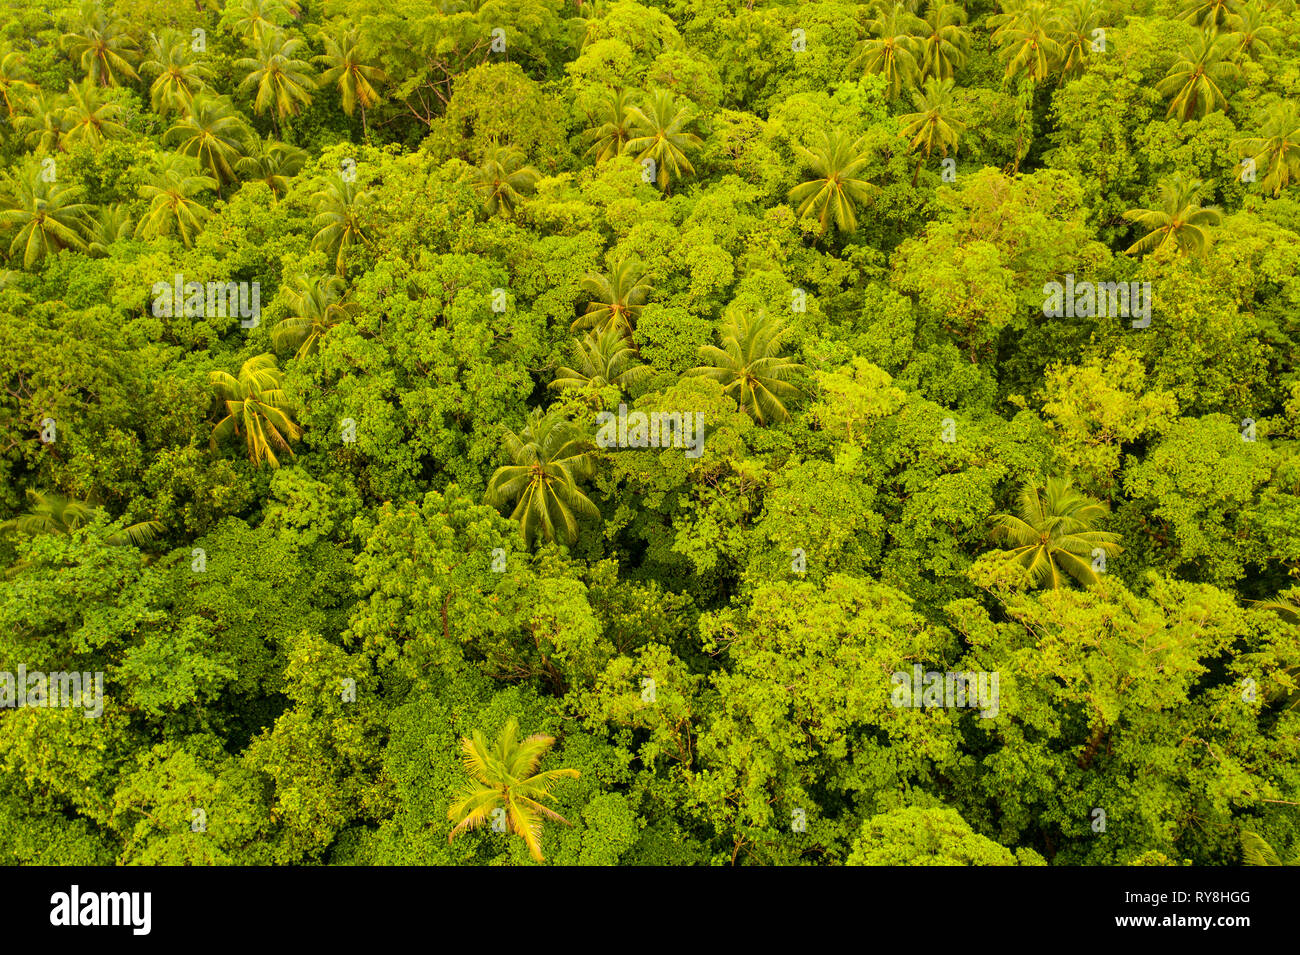 Aerial view of the lush rainforest canopy in Papua New Guinea. This region harbors extraordinary biodiversity. - Stock Image